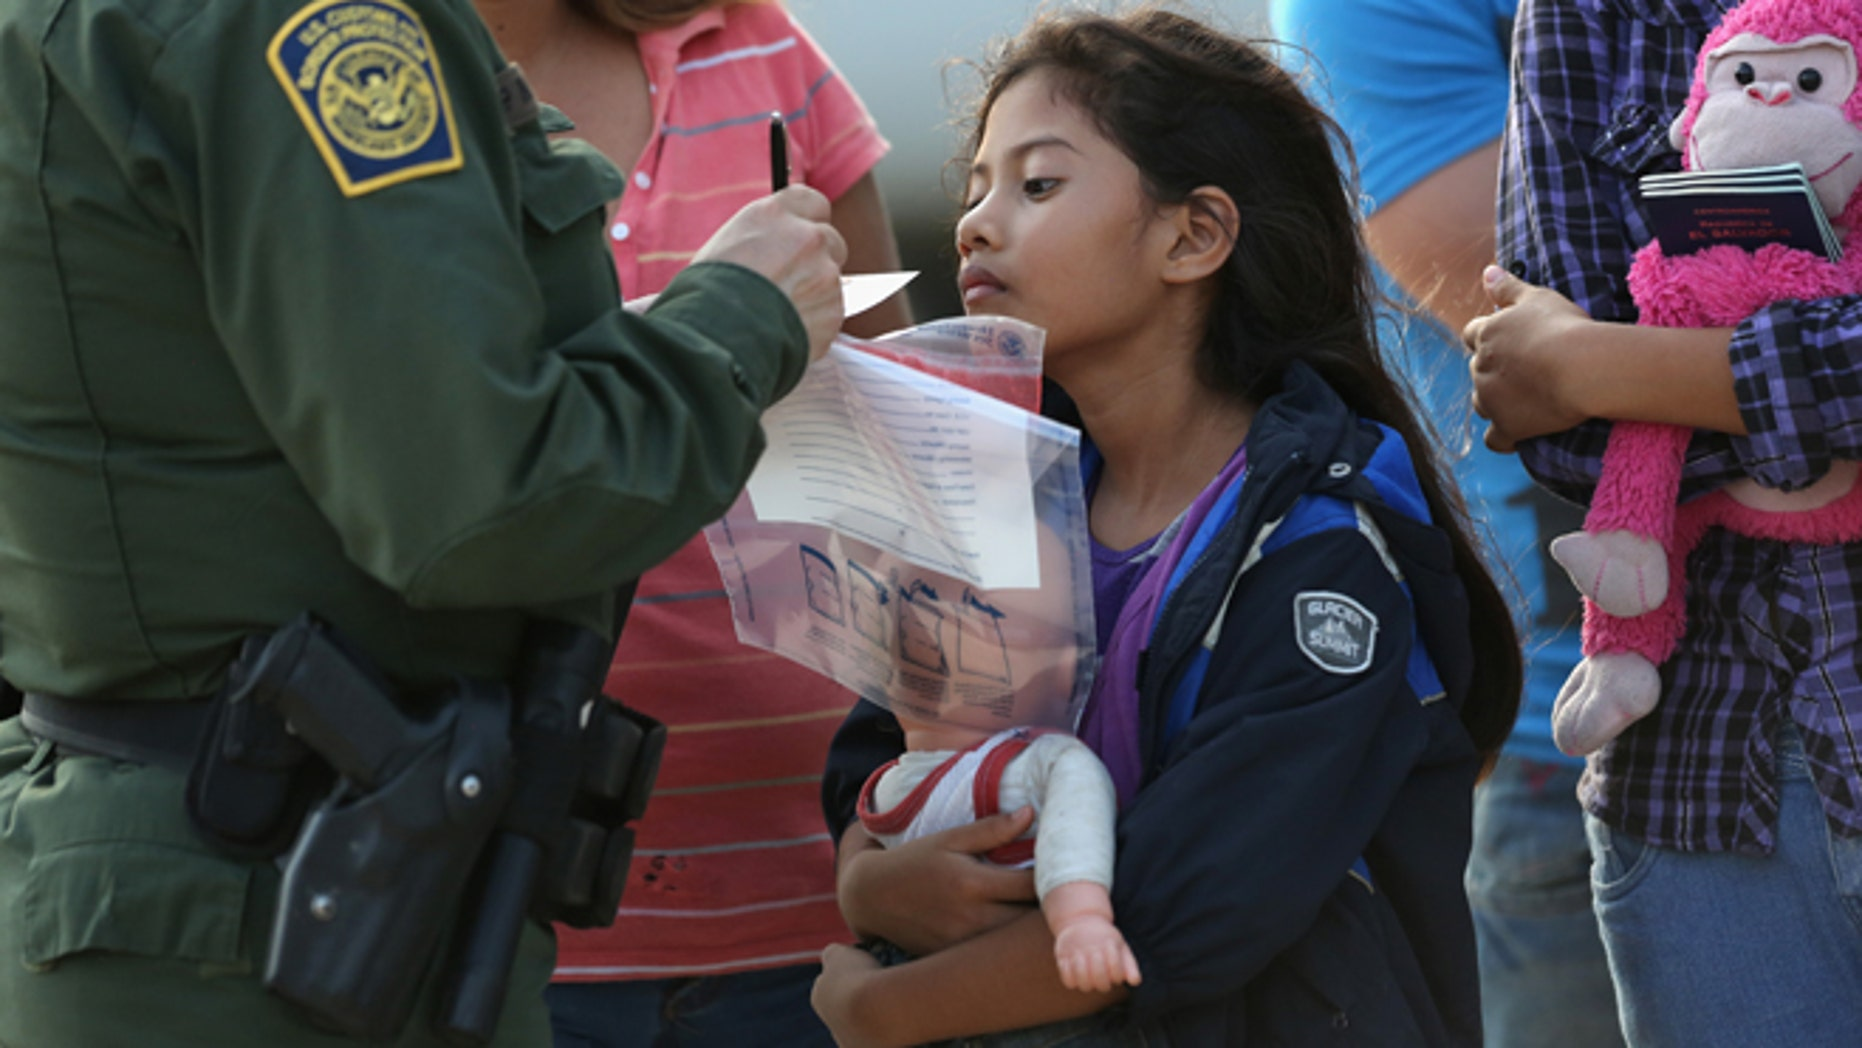 MISSION, TX - JULY 24:  Salvadorian immigrant Stefany Marjorie, 8, watches as a U.S. Border Patrol agent records family information on July 24, 2014 in Mission, Texas. Like most of the recent surge of Central American immigrant women and children, her family brought documents, often birth certificates, to prove their nationality to U.S. Border officials. Tens of thousands of immigrant families and unaccompanied minors from Central America have crossed illegally into the United States this year and presented themselves to federal agents, causing a humanitarian crisis on the U.S.-Mexico border. Texas' Rio Grande Valley has become the epicenter of the latest immigrant crisis, as more of them enter illegally from Mexico into that sector than any other stretch of the America's 1,933 mile border with Mexico.  (Photo by John Moore/Getty Images)